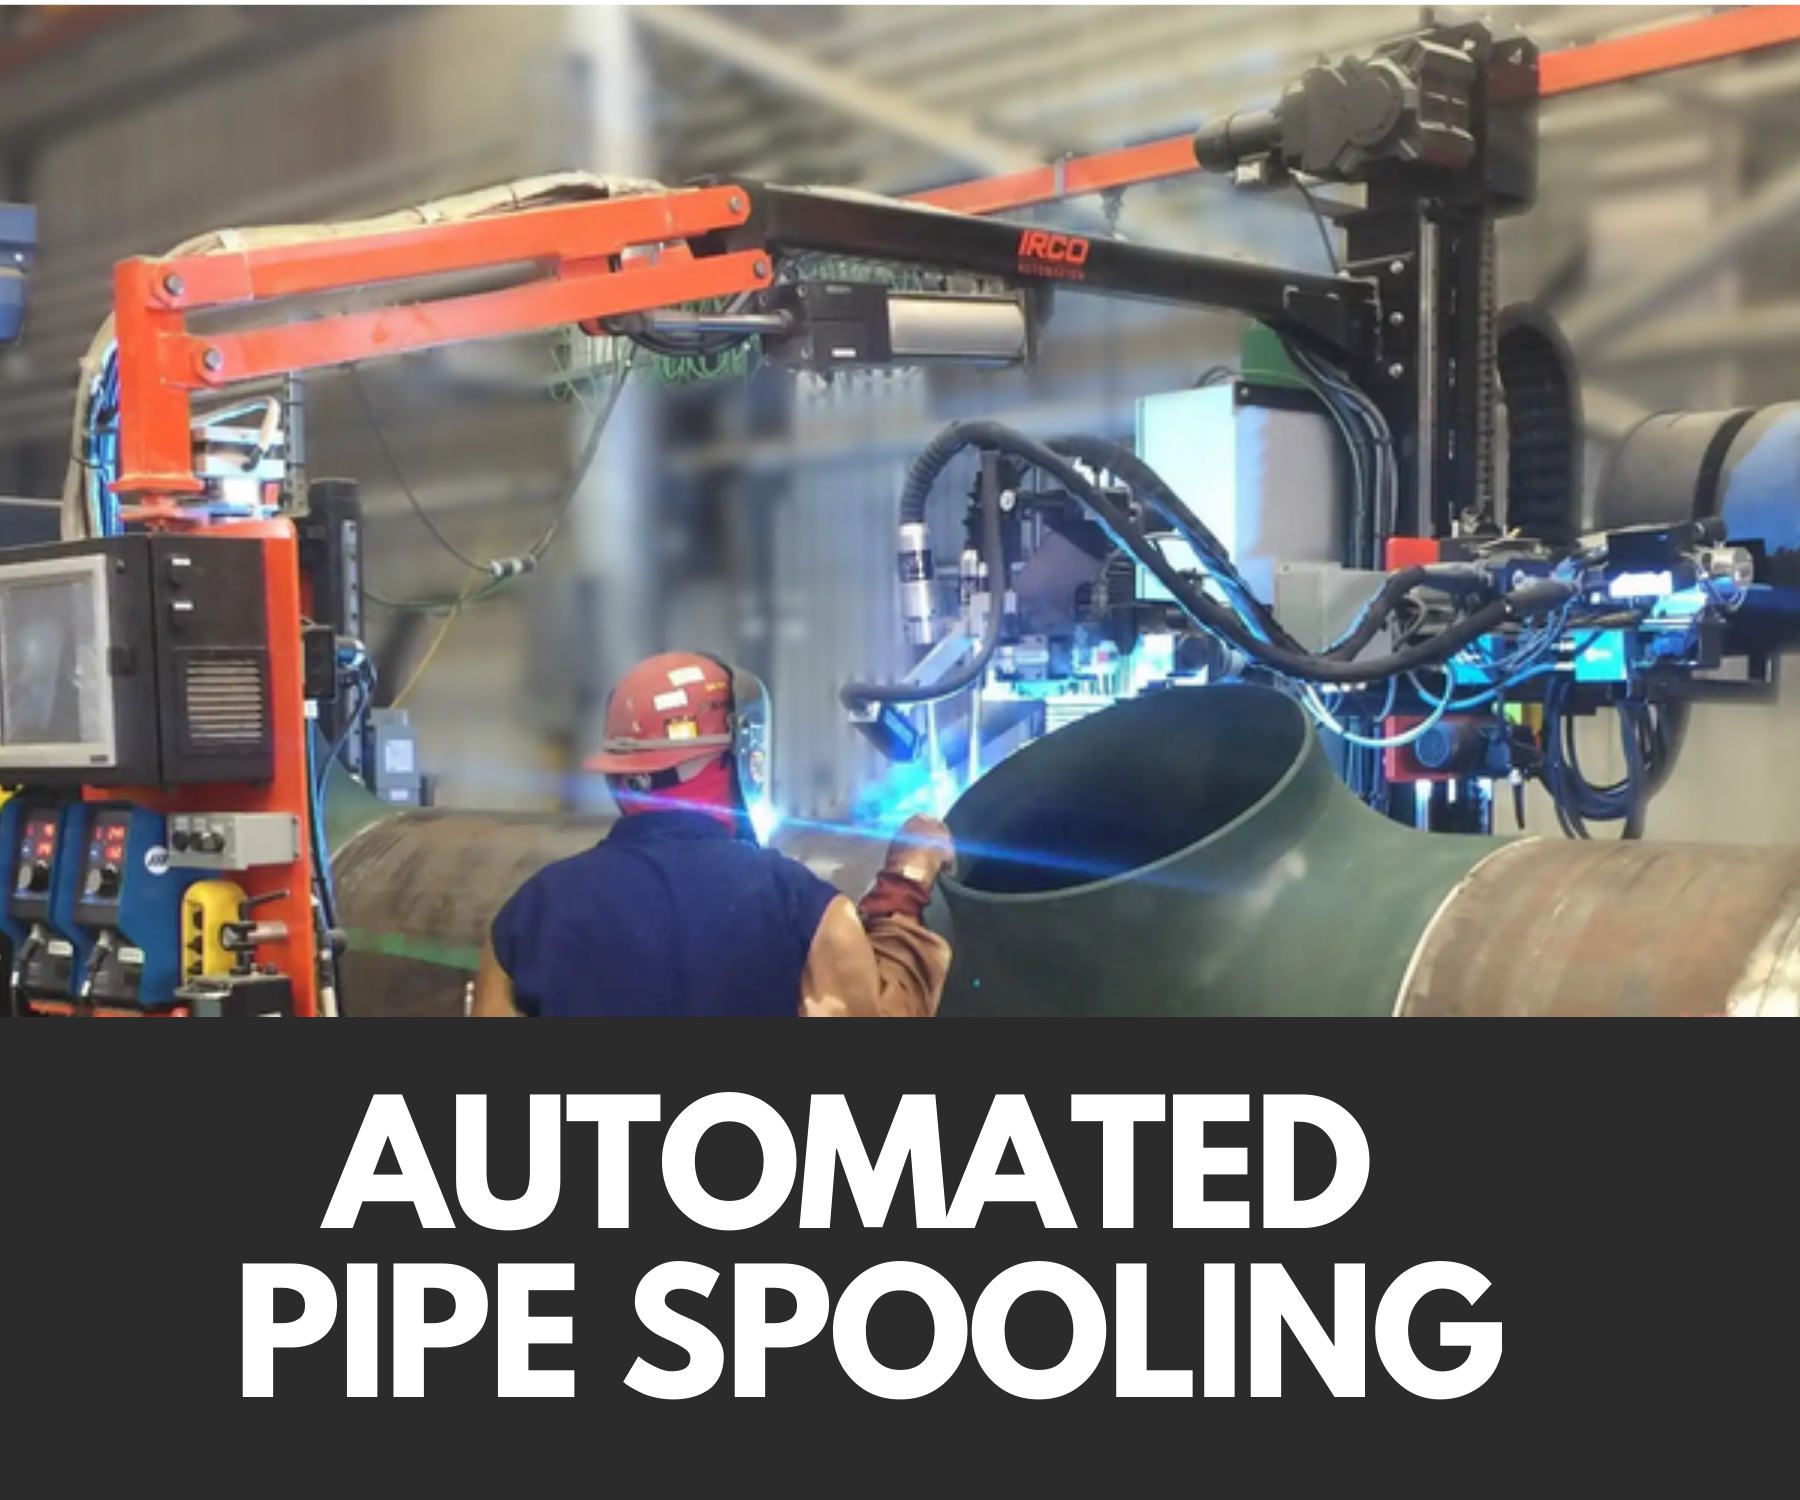 News: Automated Pipe Spooling